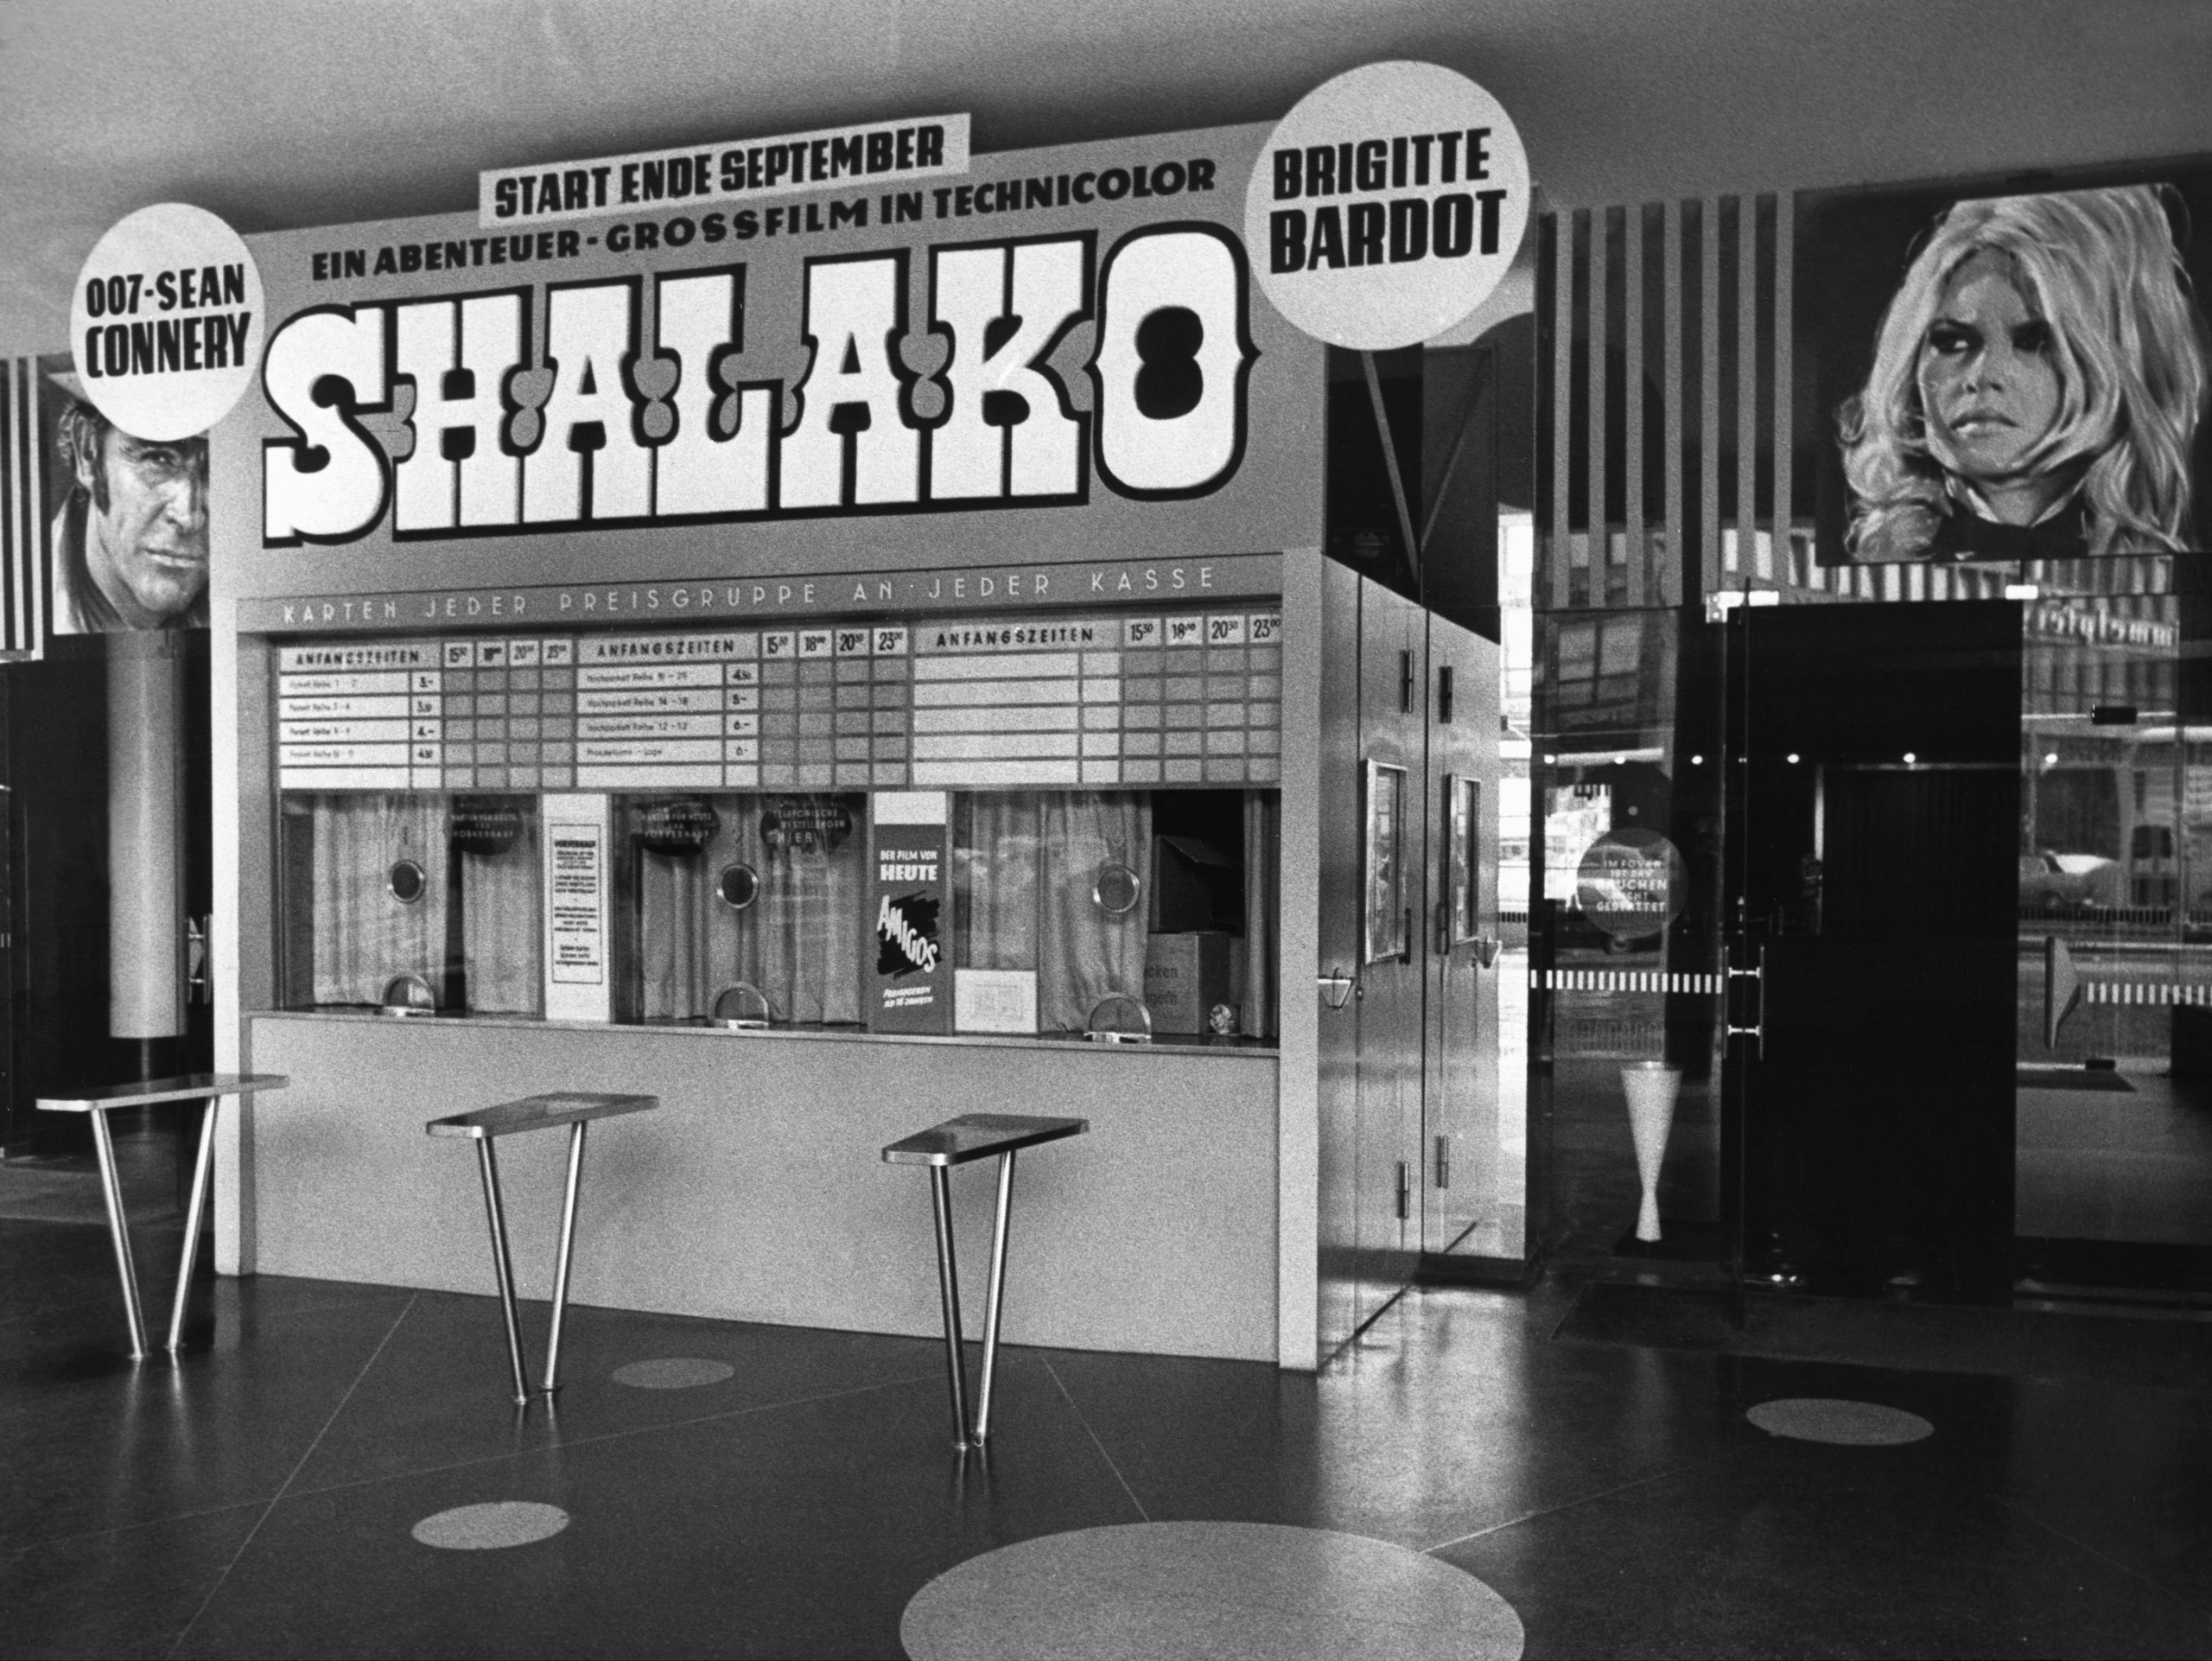 Black and white photo: box office in the entrance hall with film advertisements